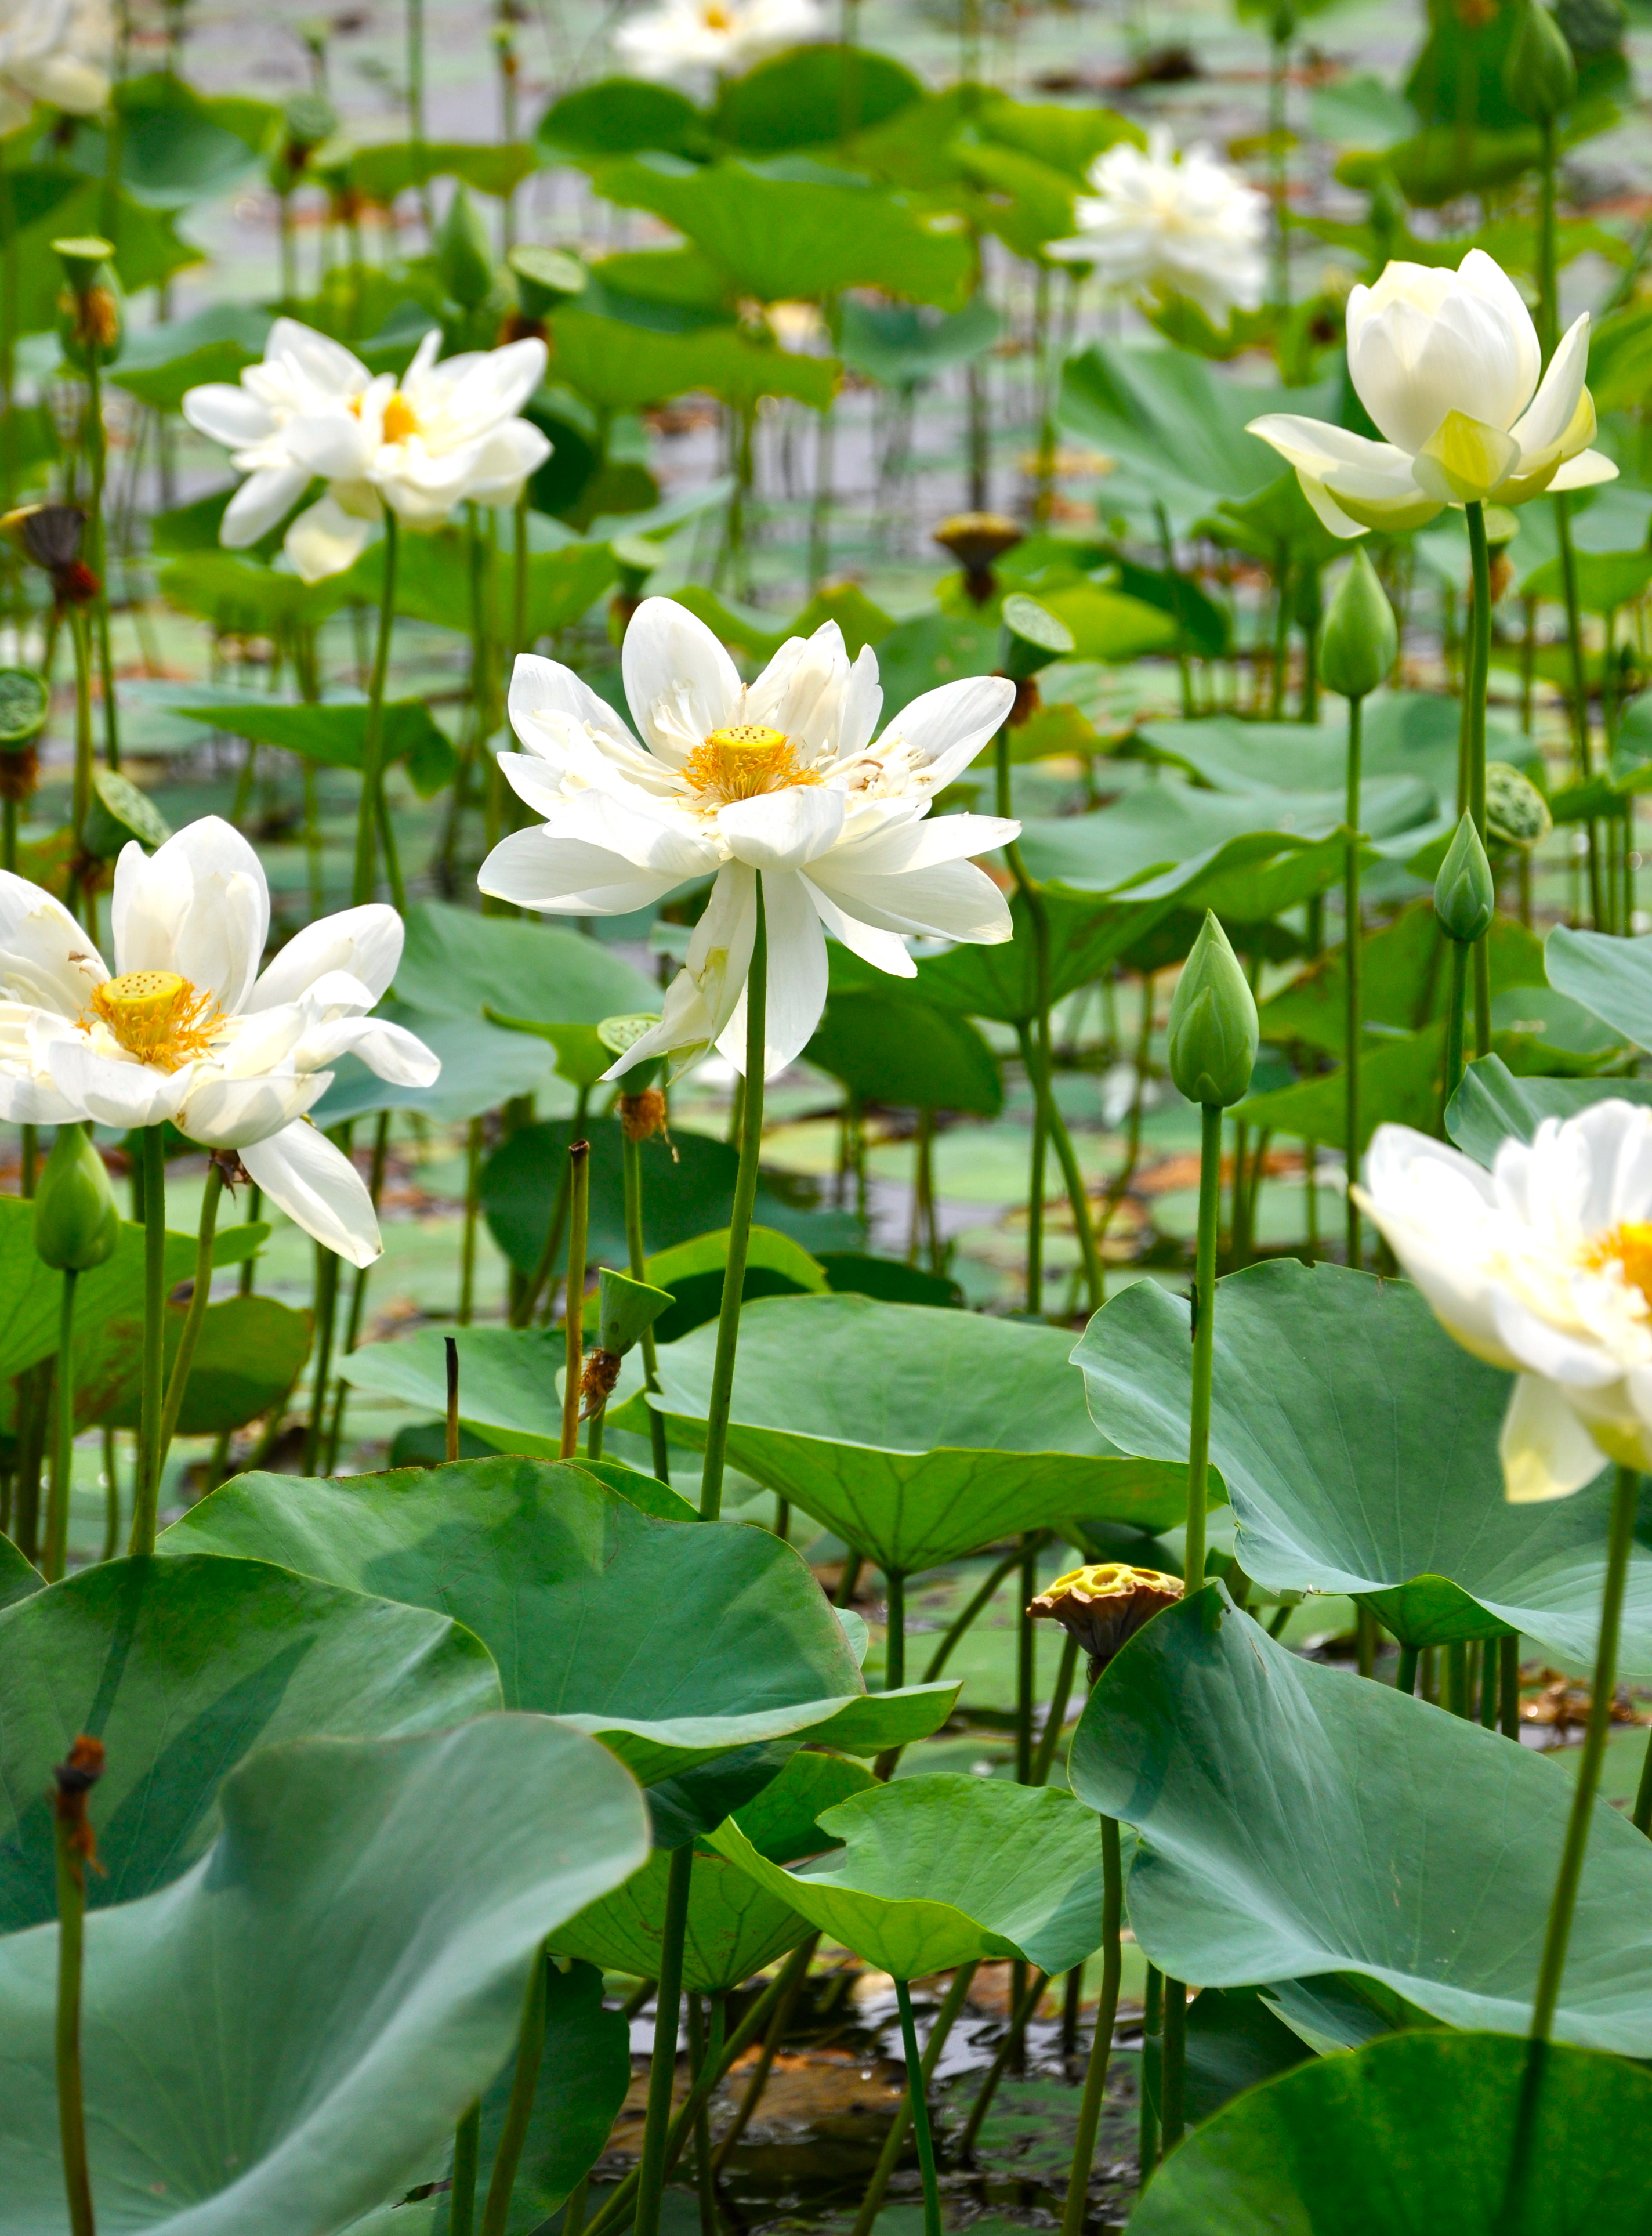 Keep doing right things lijiun be like the lotus flower no matter how challenging is the environment it spread izmirmasajfo